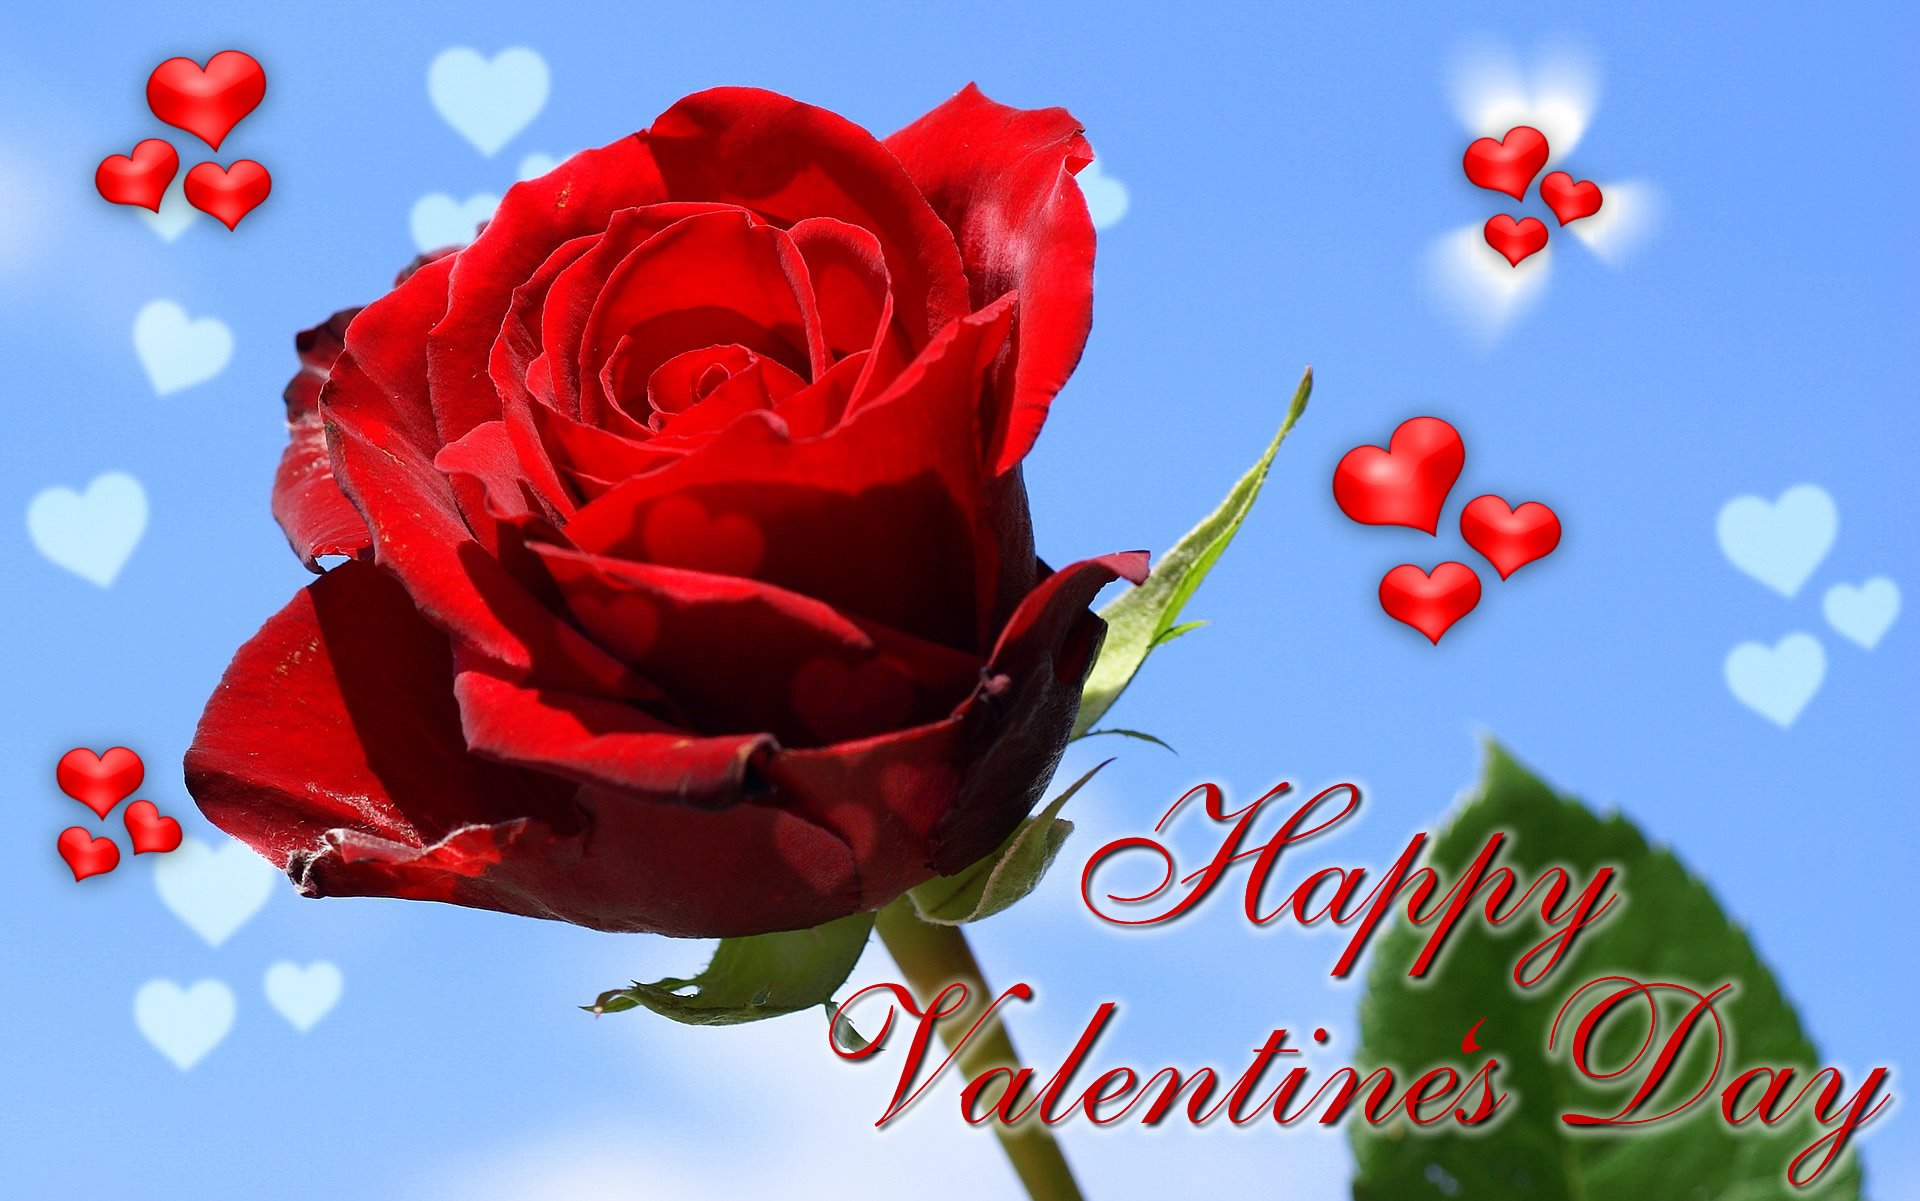 sweet-rose-wallpaper-valentine-day-free-beautiful-hd